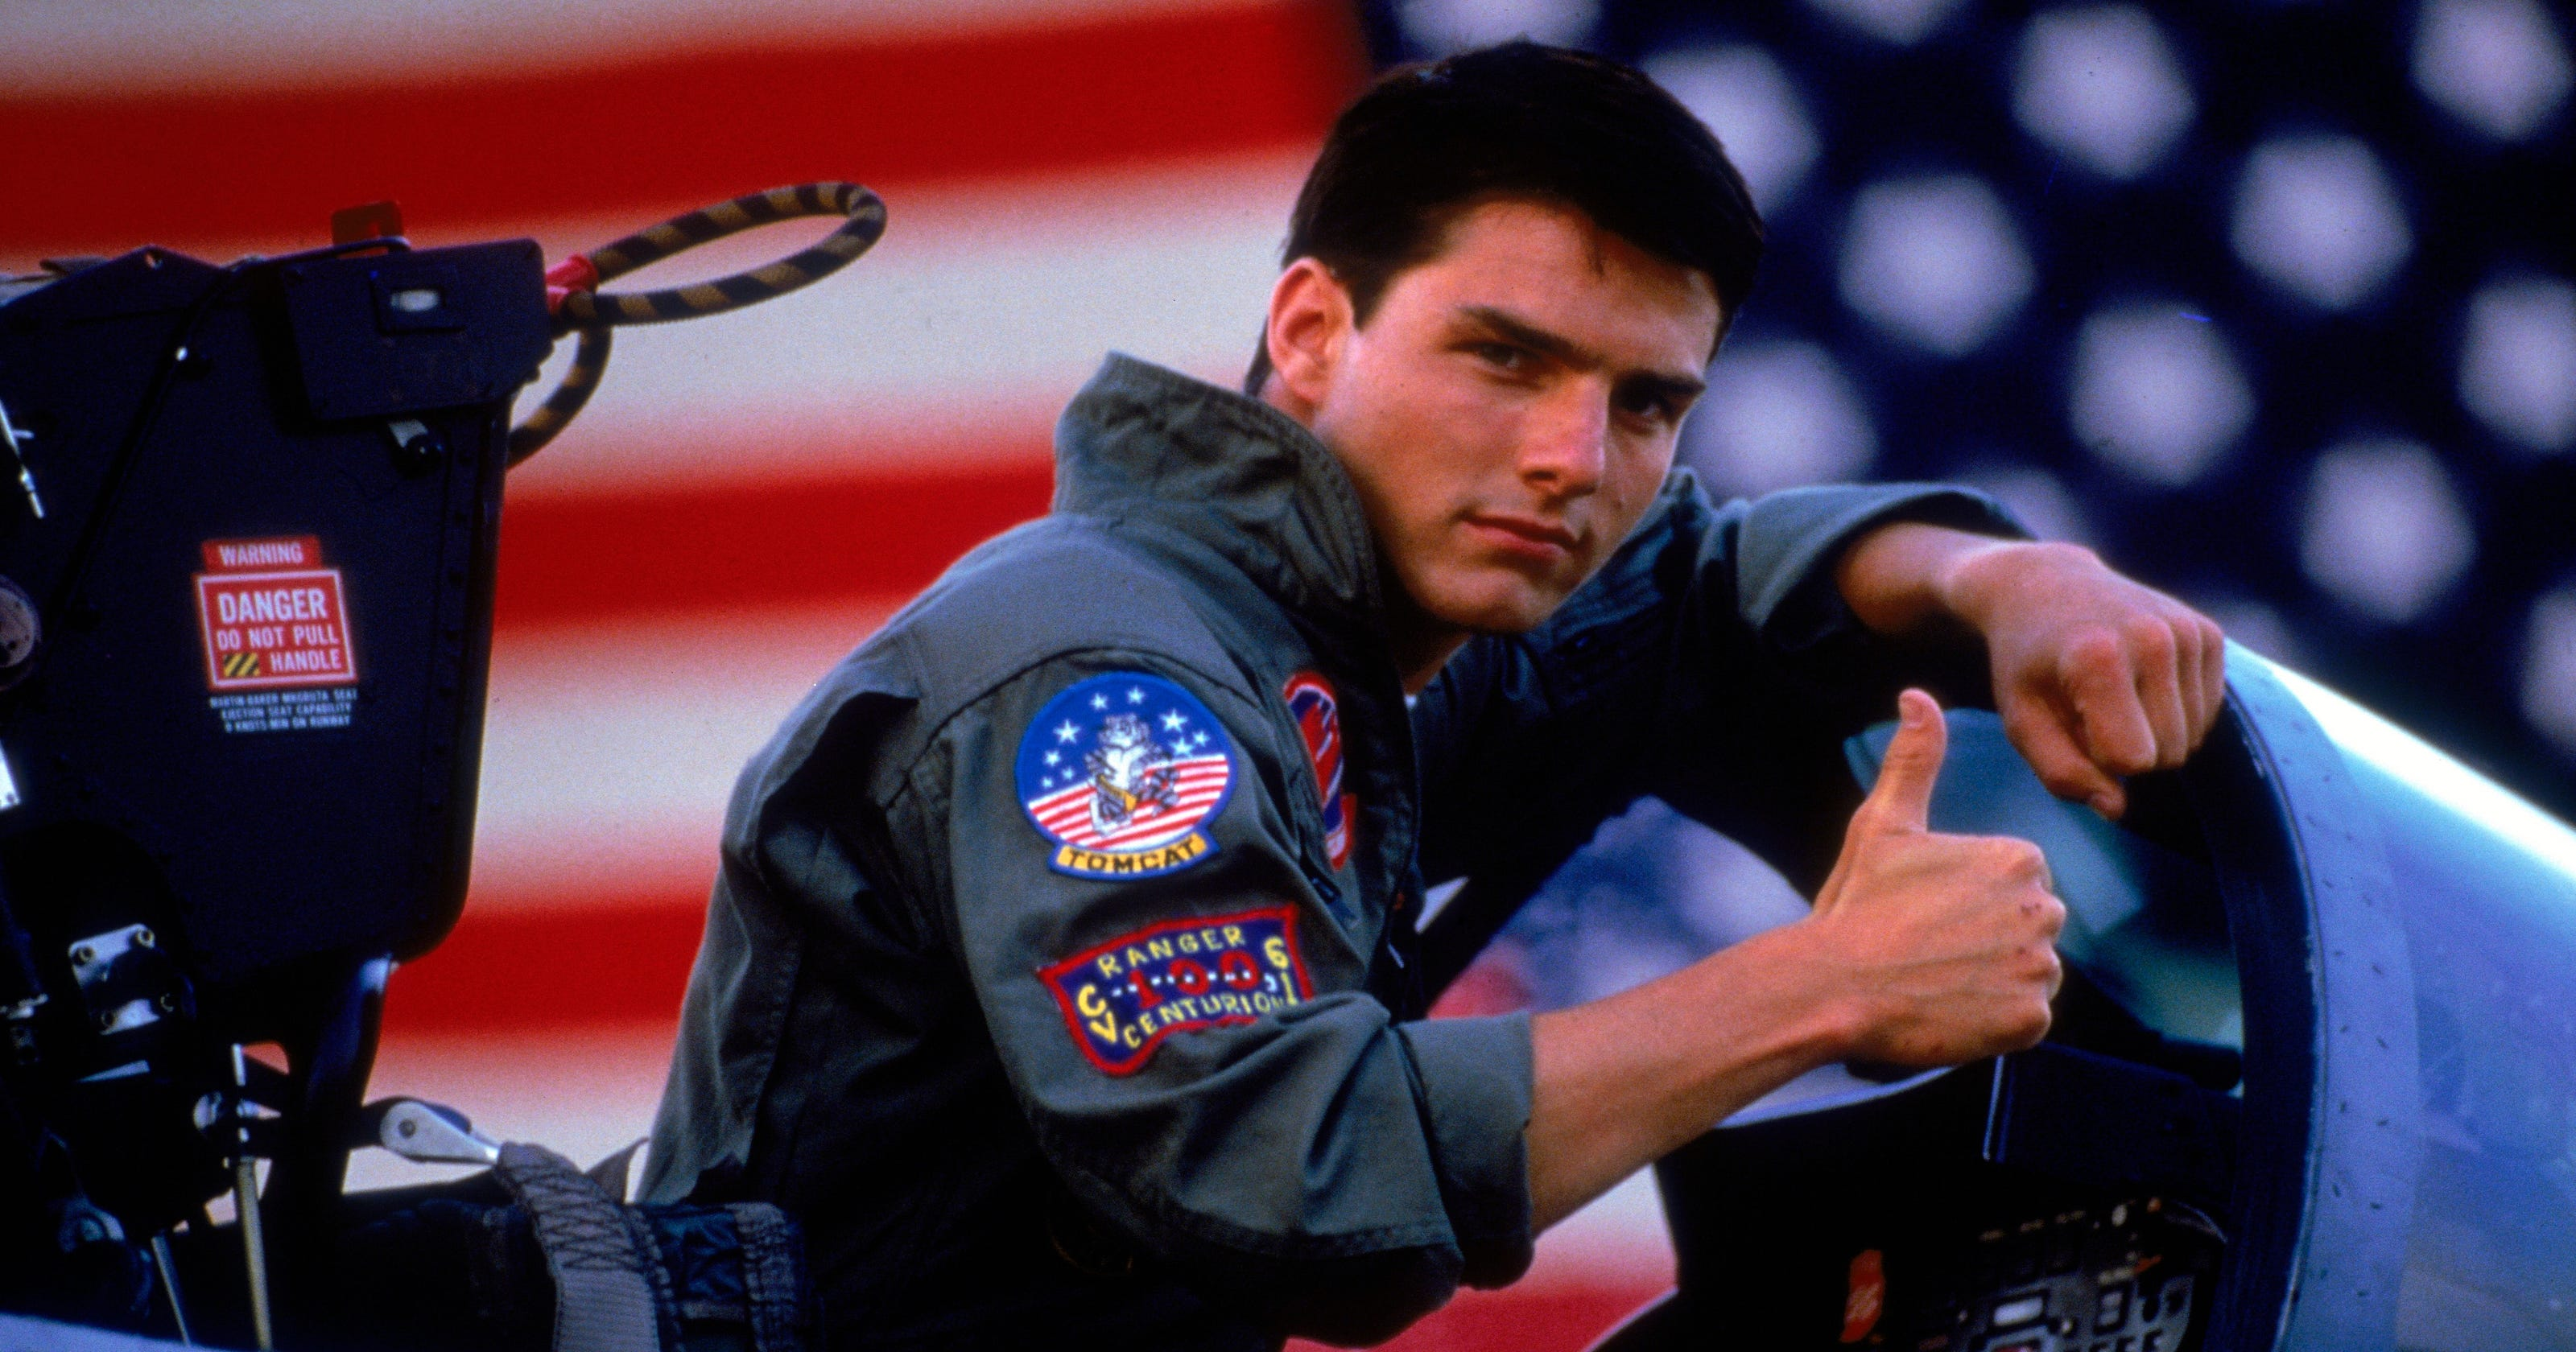 Top Gun 2' postponed to June 2020: Everything we know about 'Maverick'